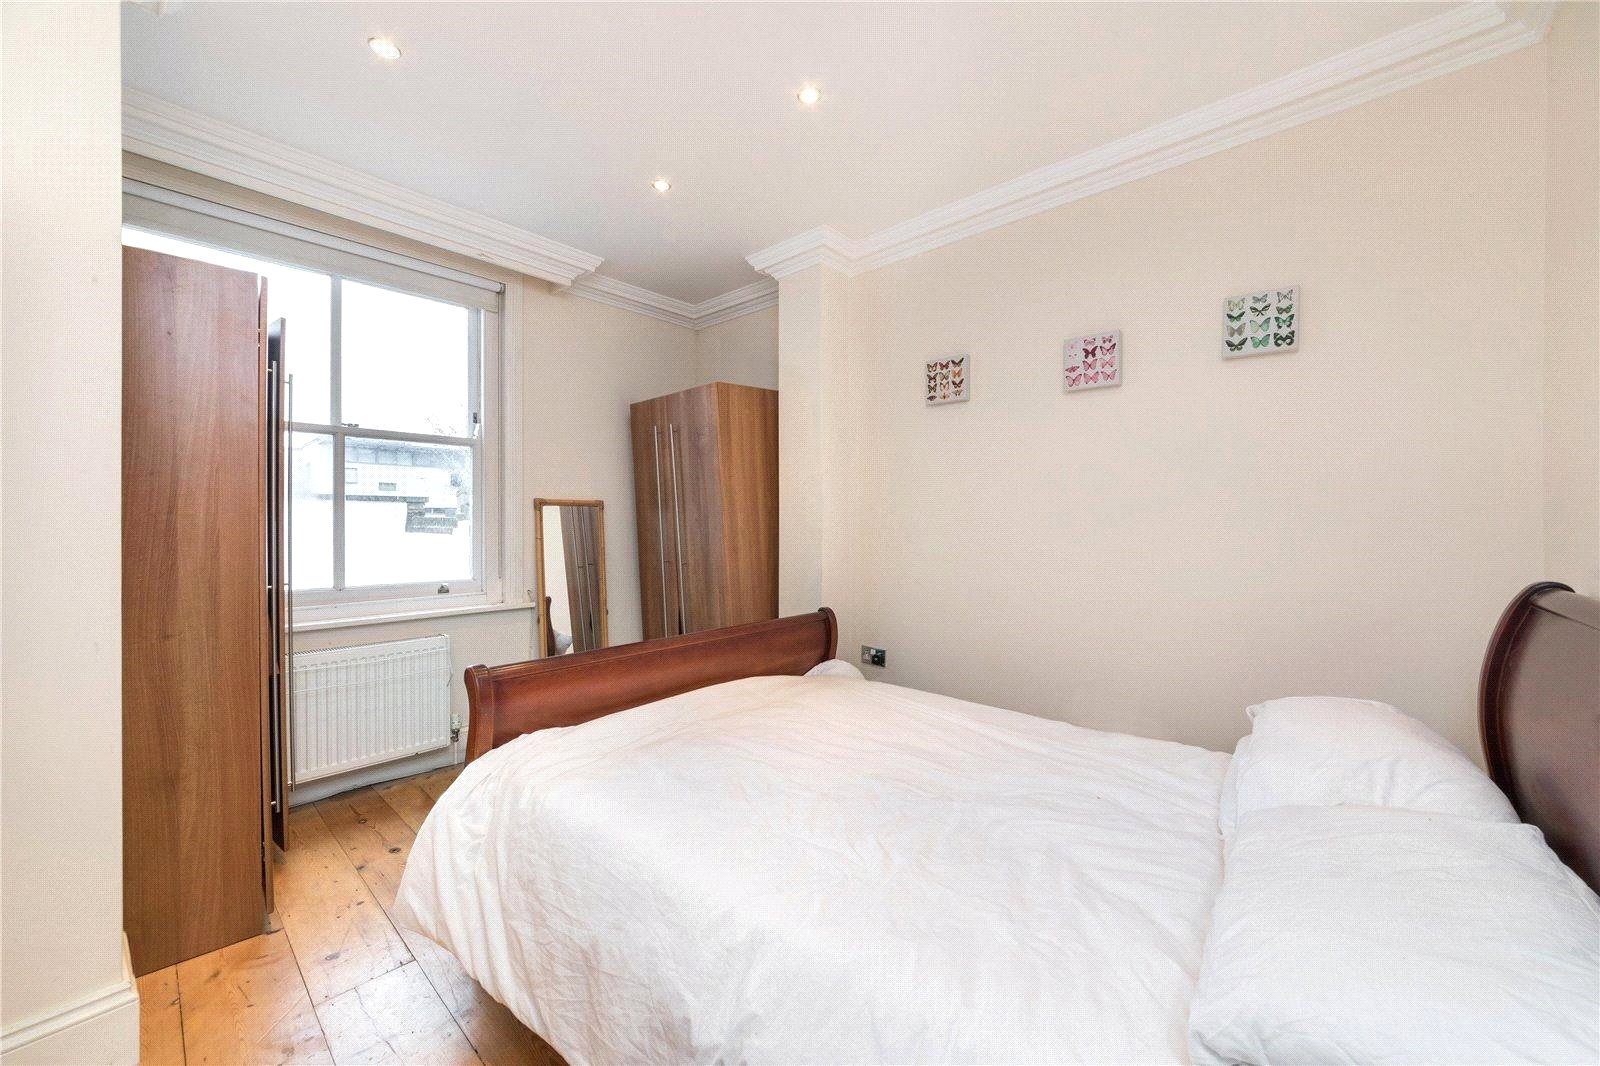 2 bed apartment to rent in Arsenal, N5 1LU 4